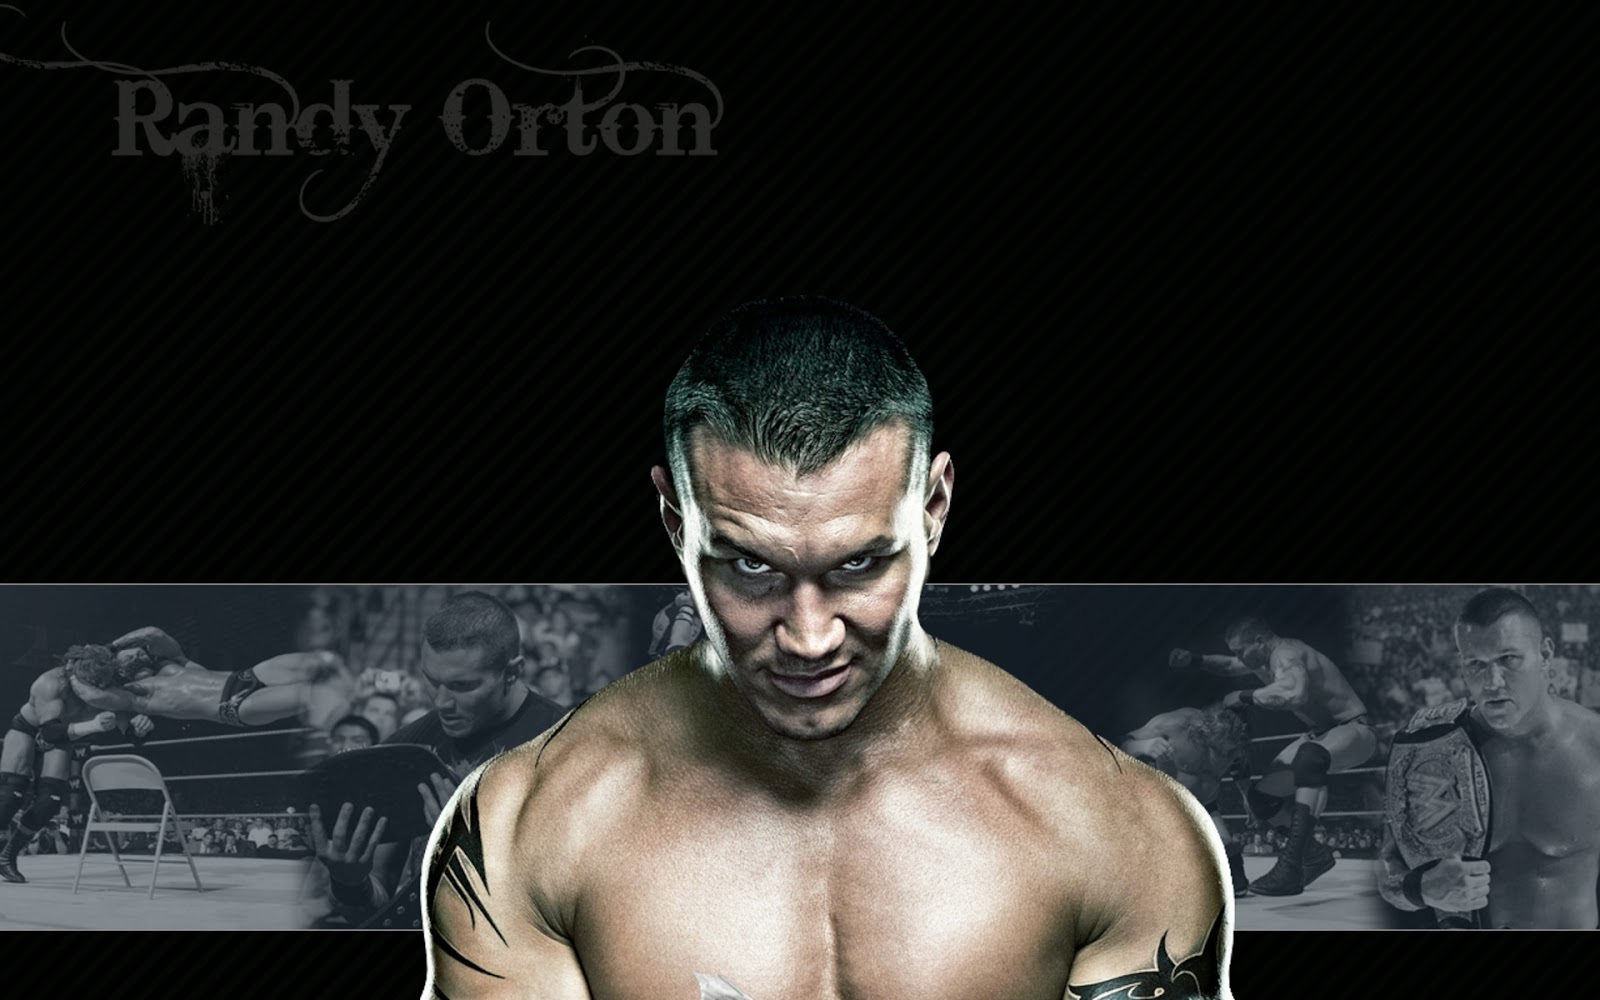 Randy Orton, WWE, Wallpaper, Photo, Images, Pics, Pictures, Widescreen, photograph, Fullscreen, Free Download Wallpapers